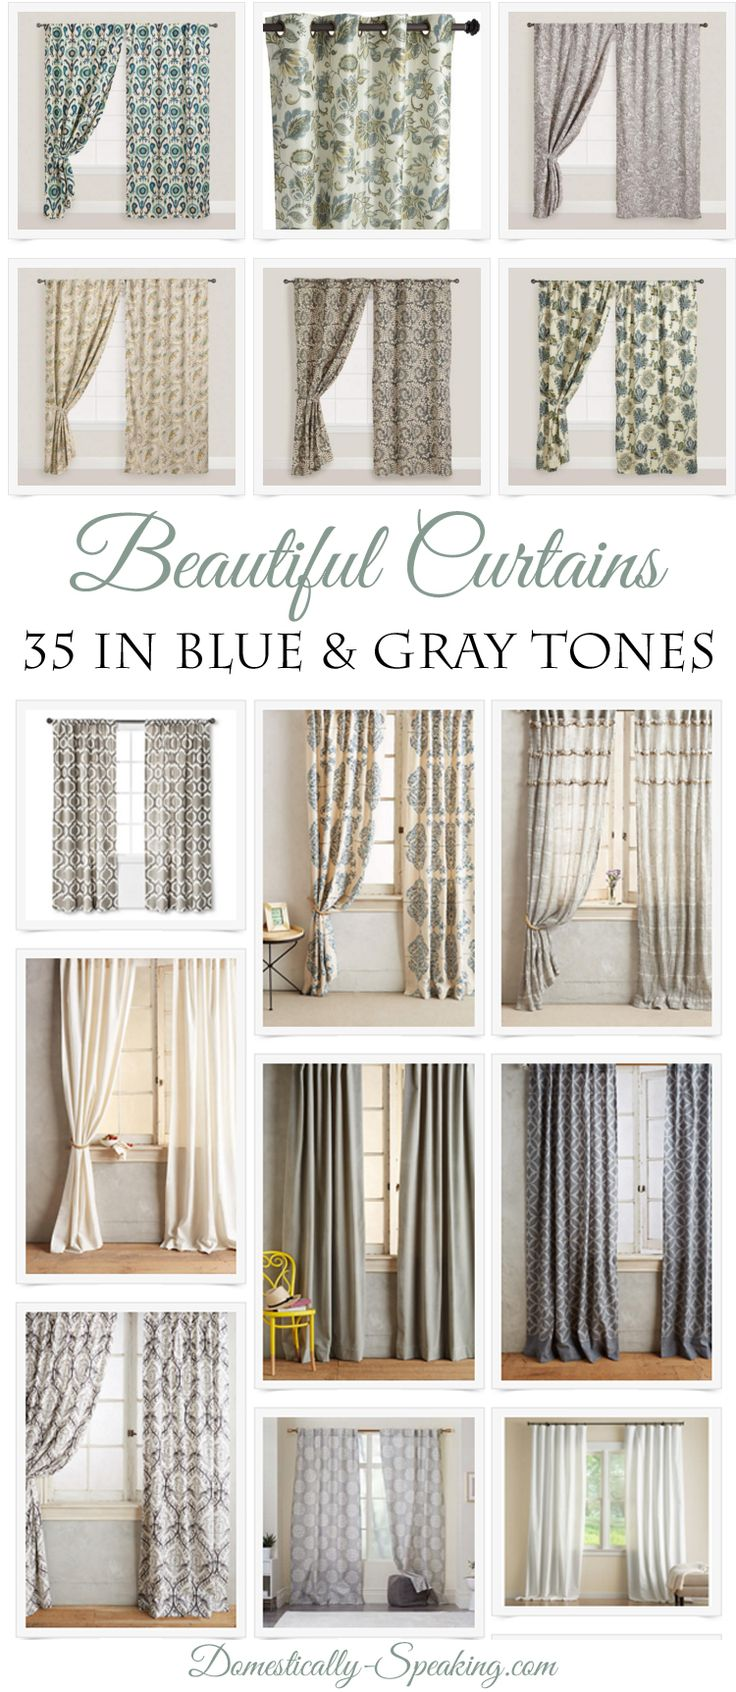 35 Beautiful Curtain ideas for the master bedroom! Calming blue and gray tone curtain panels that are perfect to help create that relaxing retreat you want in your master bedroom